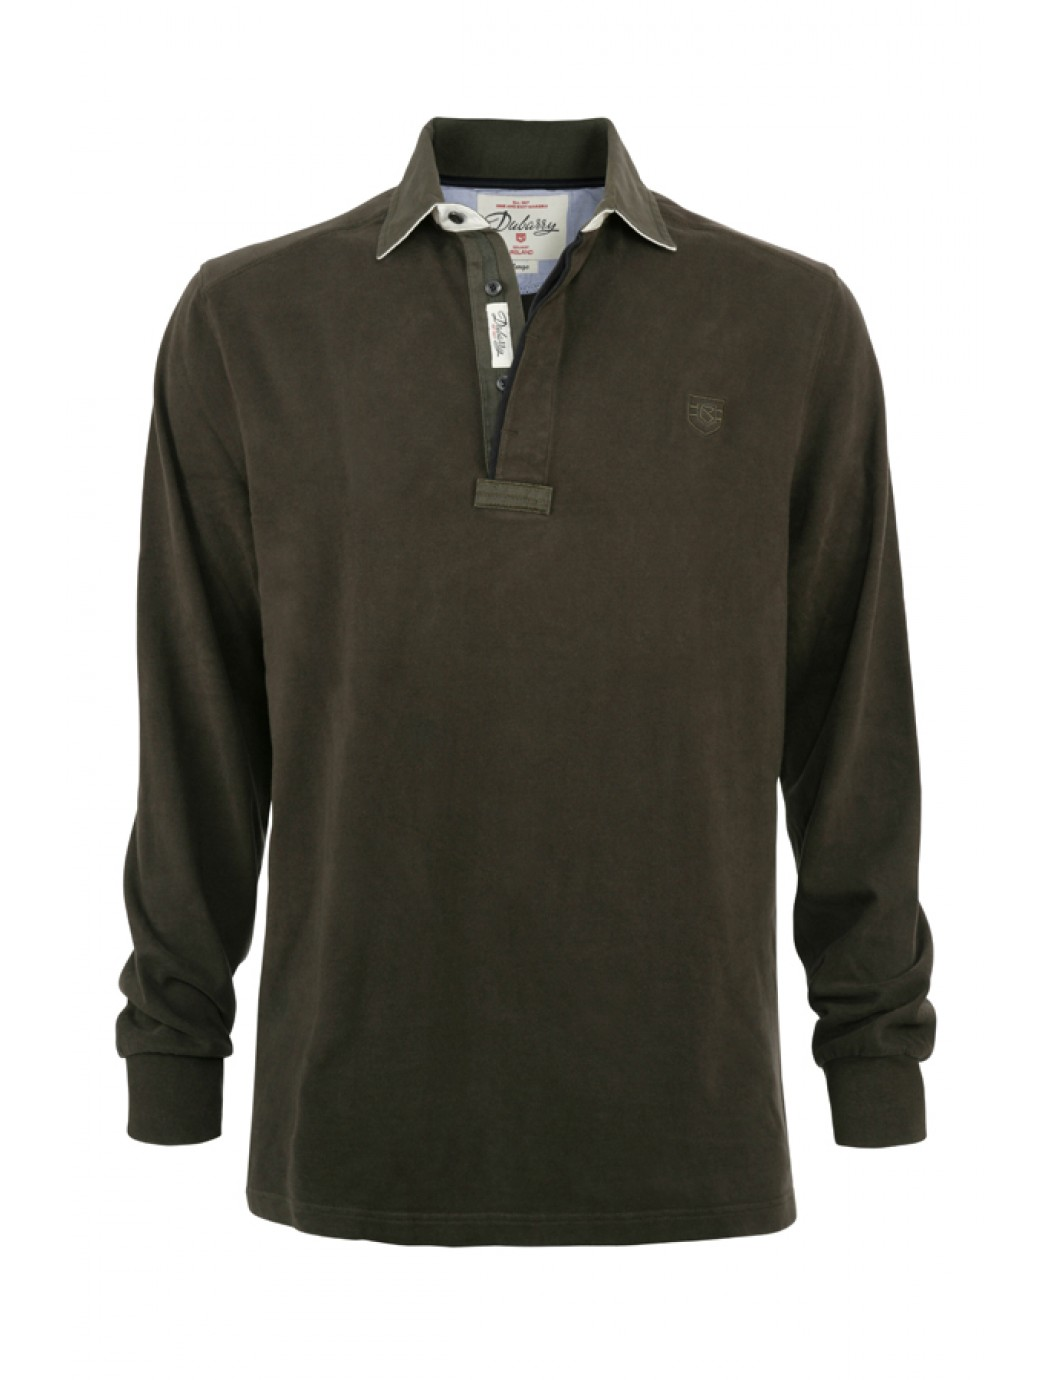 key-rugby-shirt-verdigris-dubarry-1 1